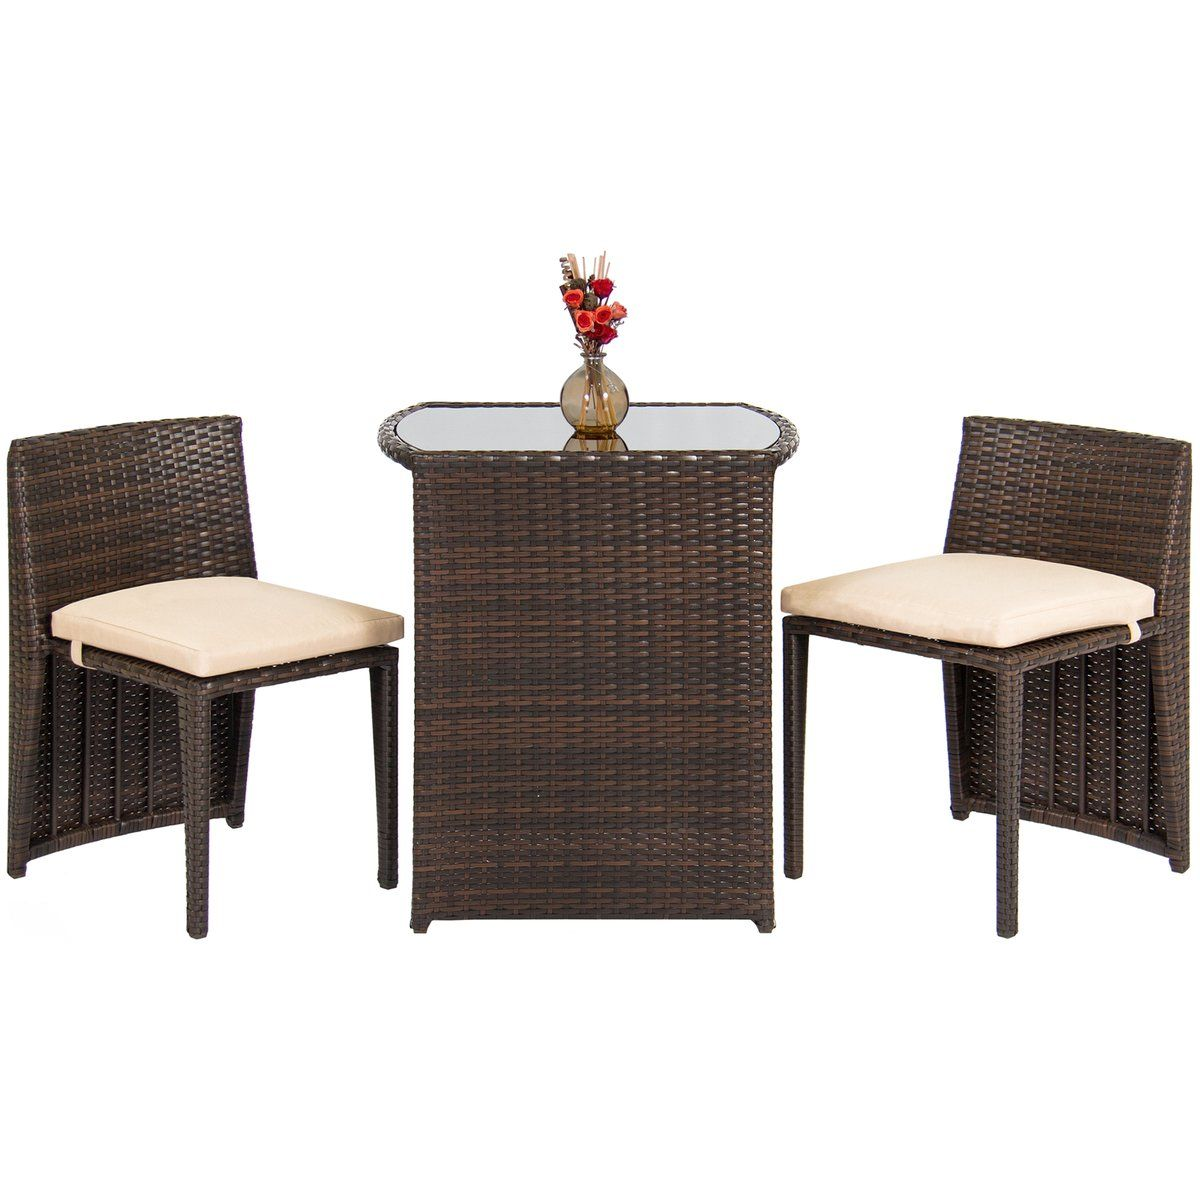 3 Piece Wicker Bistro Outdoor Furniture Set W Glass Top Table In